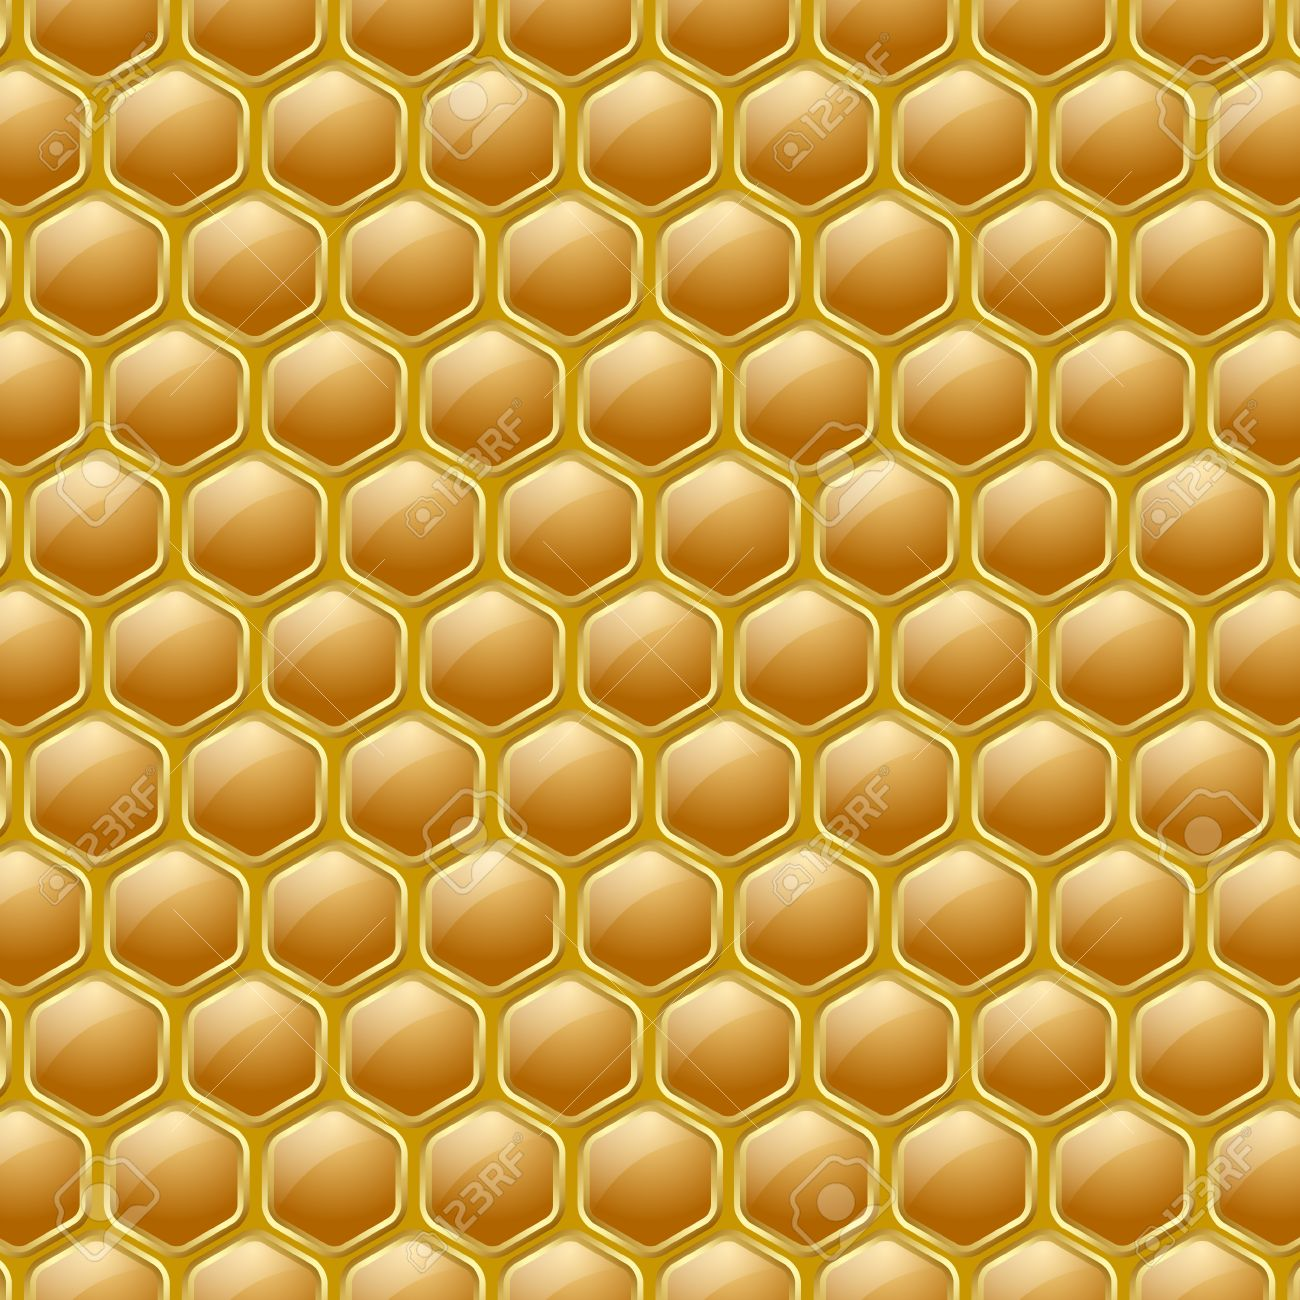 Golden And Glossy Honeycomb Pattern On Yellow Ochre Background.